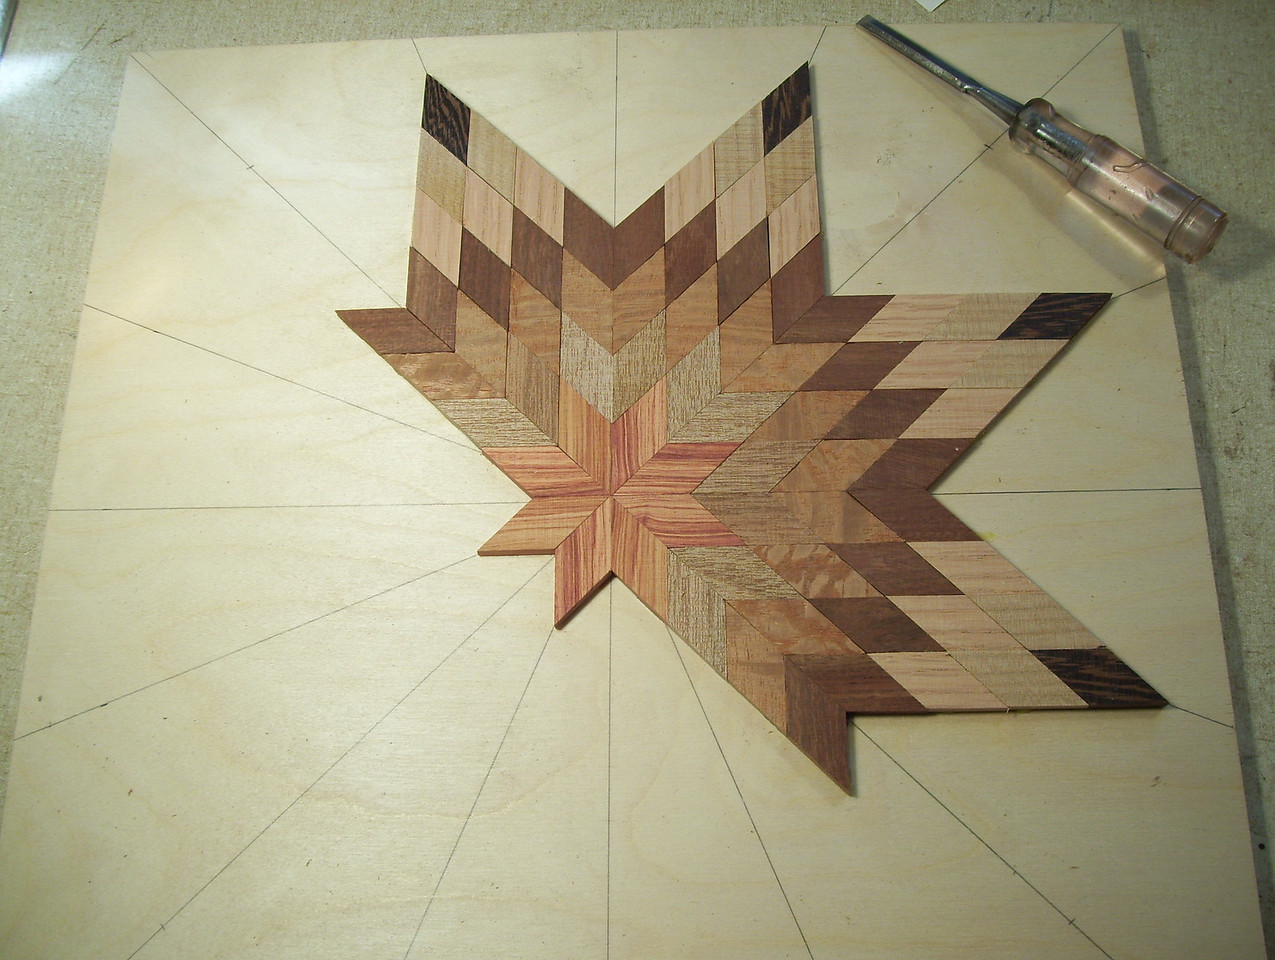 Making a Lazy Susan #11<br /> I continue this process one point at a time on around the star to the last two points.